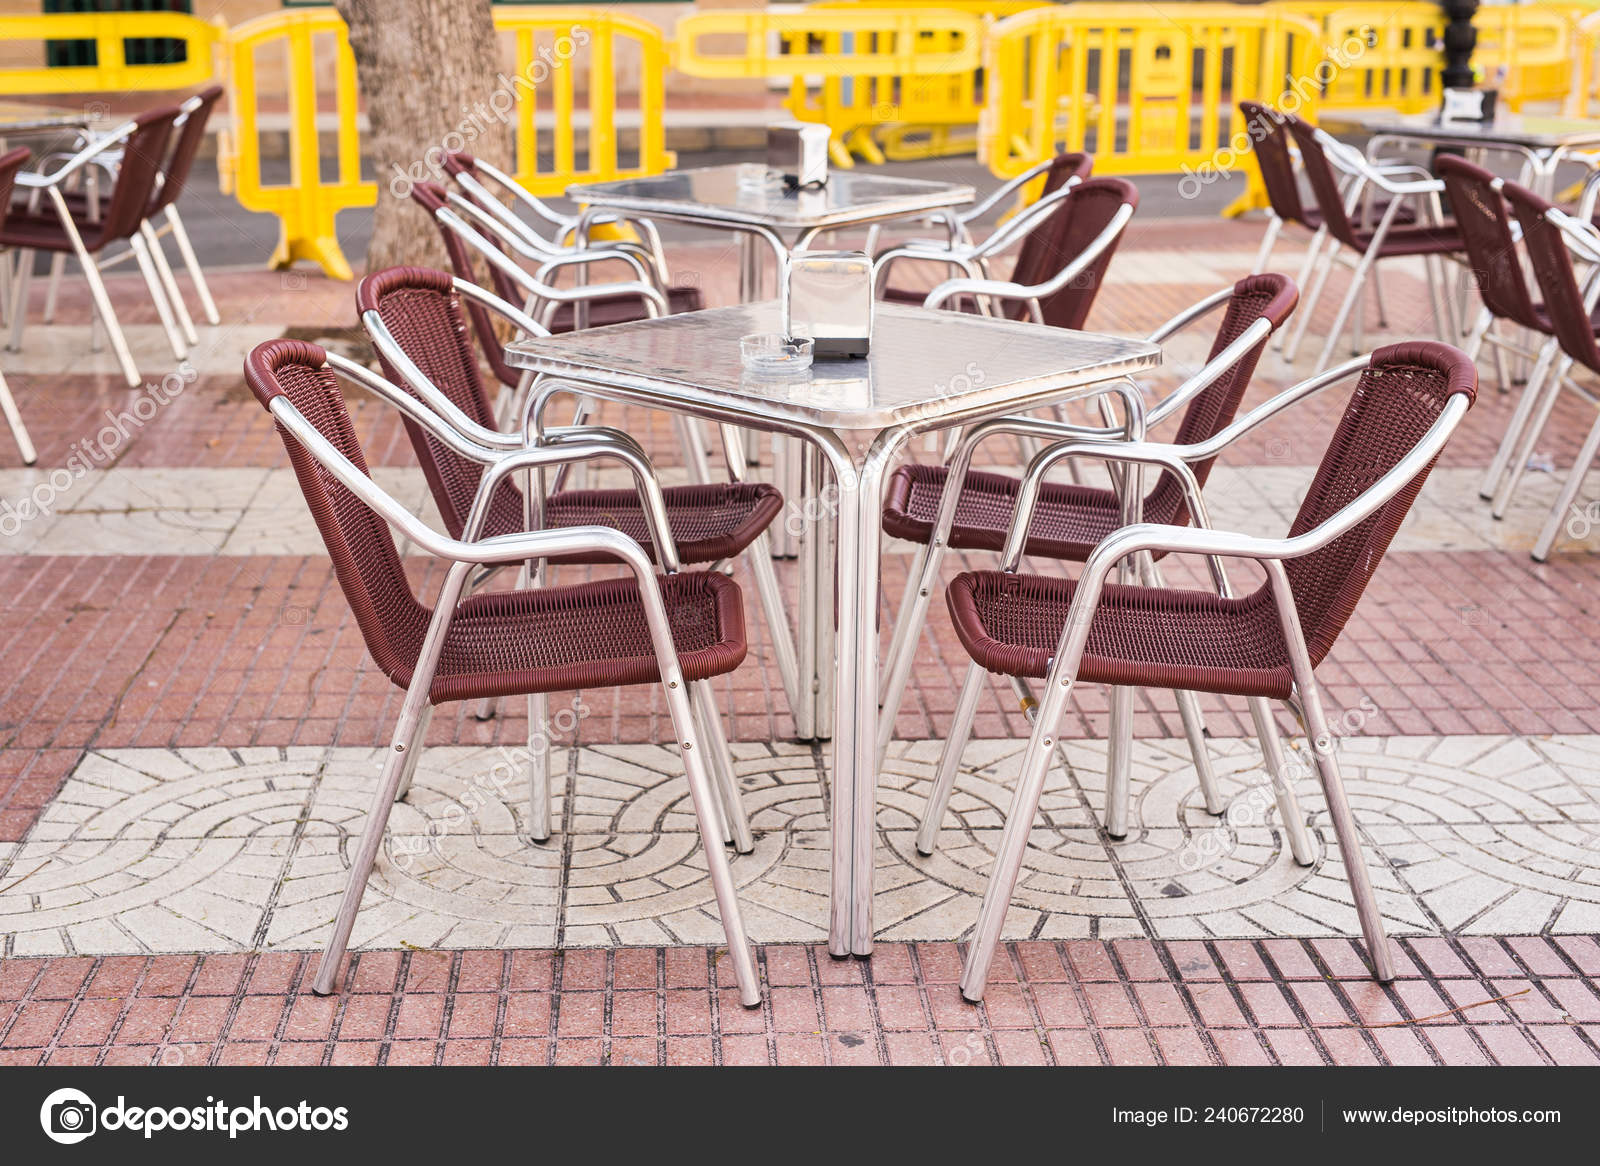 Cafe Coffee Shop Tavern And Restaurant Concept Outdoor Street Cafe Tables Ready For Service Stock Photo C Satura 240672280